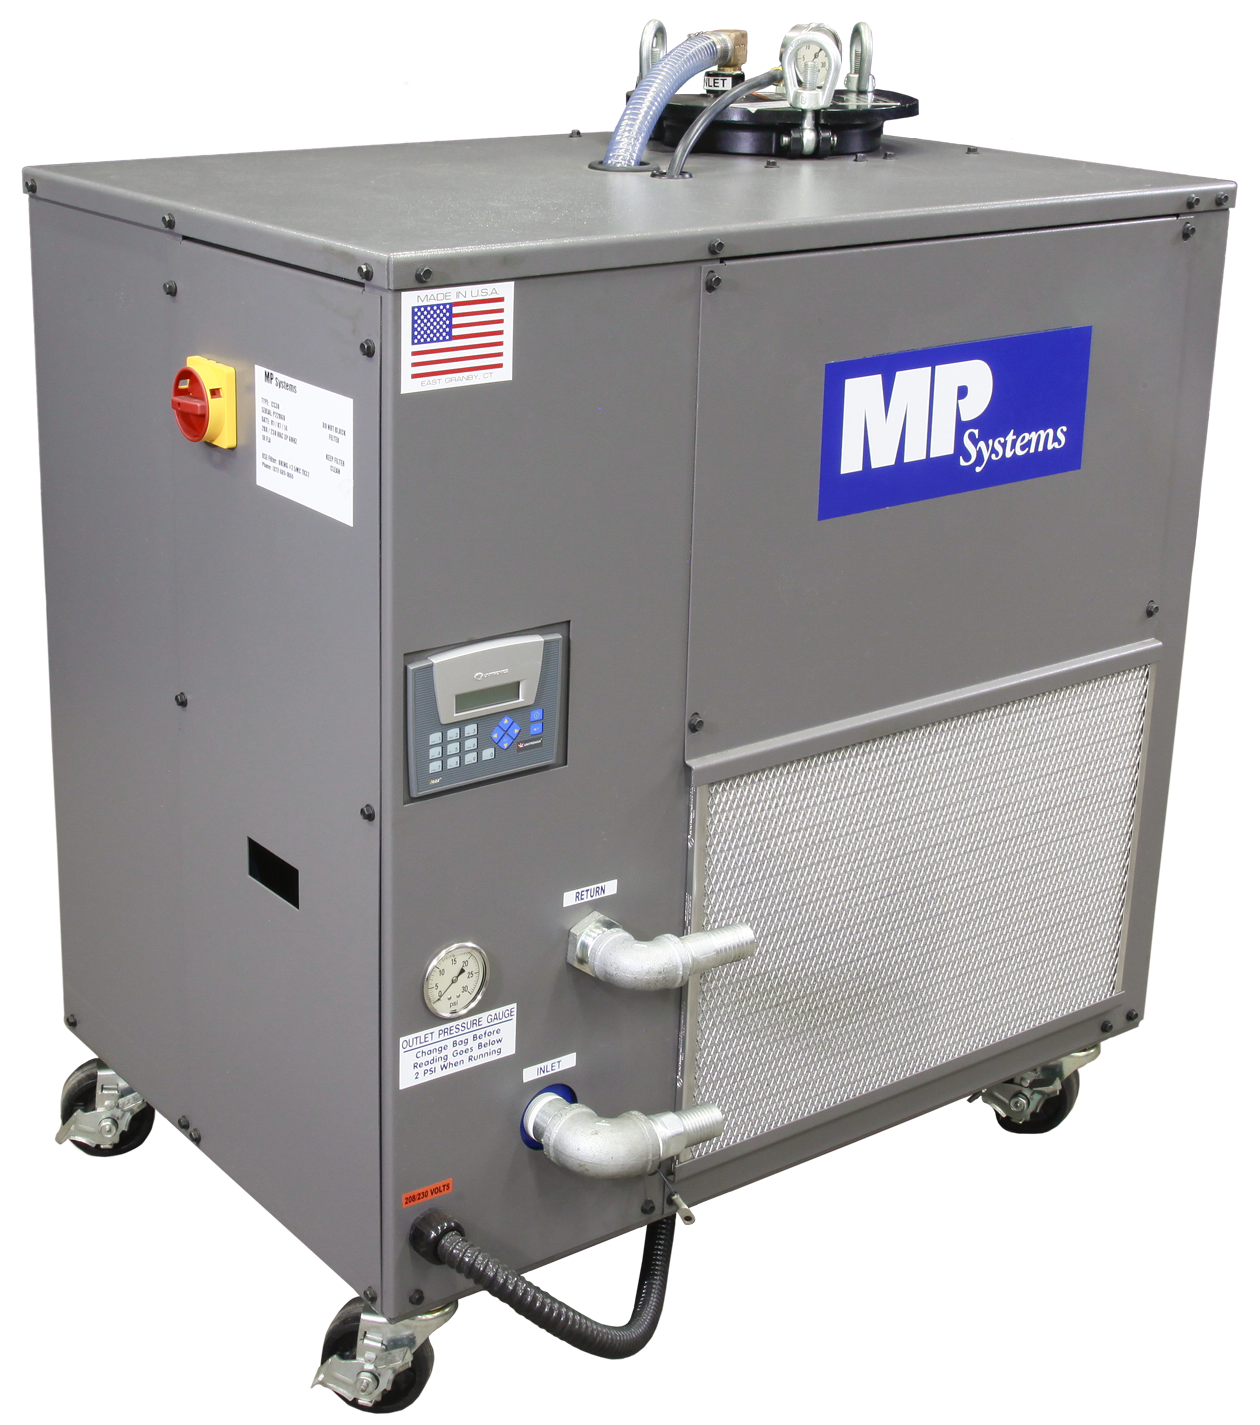 Small Exhibition Stand Alone : Mp systems to display new smart high pressure coolant